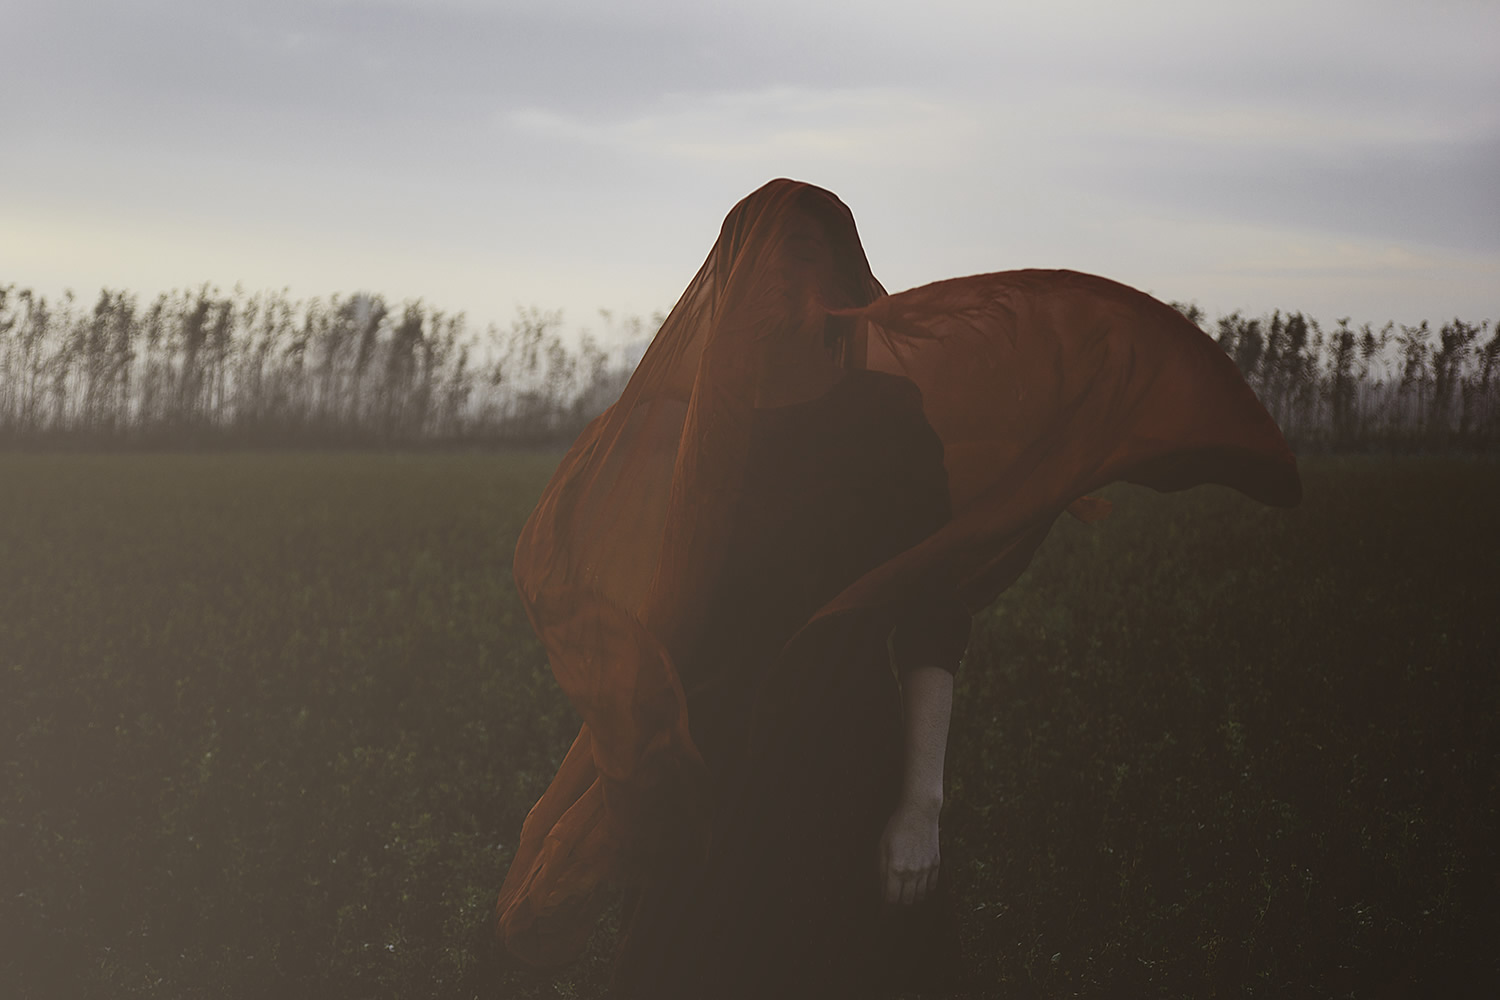 hidden under a red veil, photography by Aitor Frías & Cecilia Jiménez